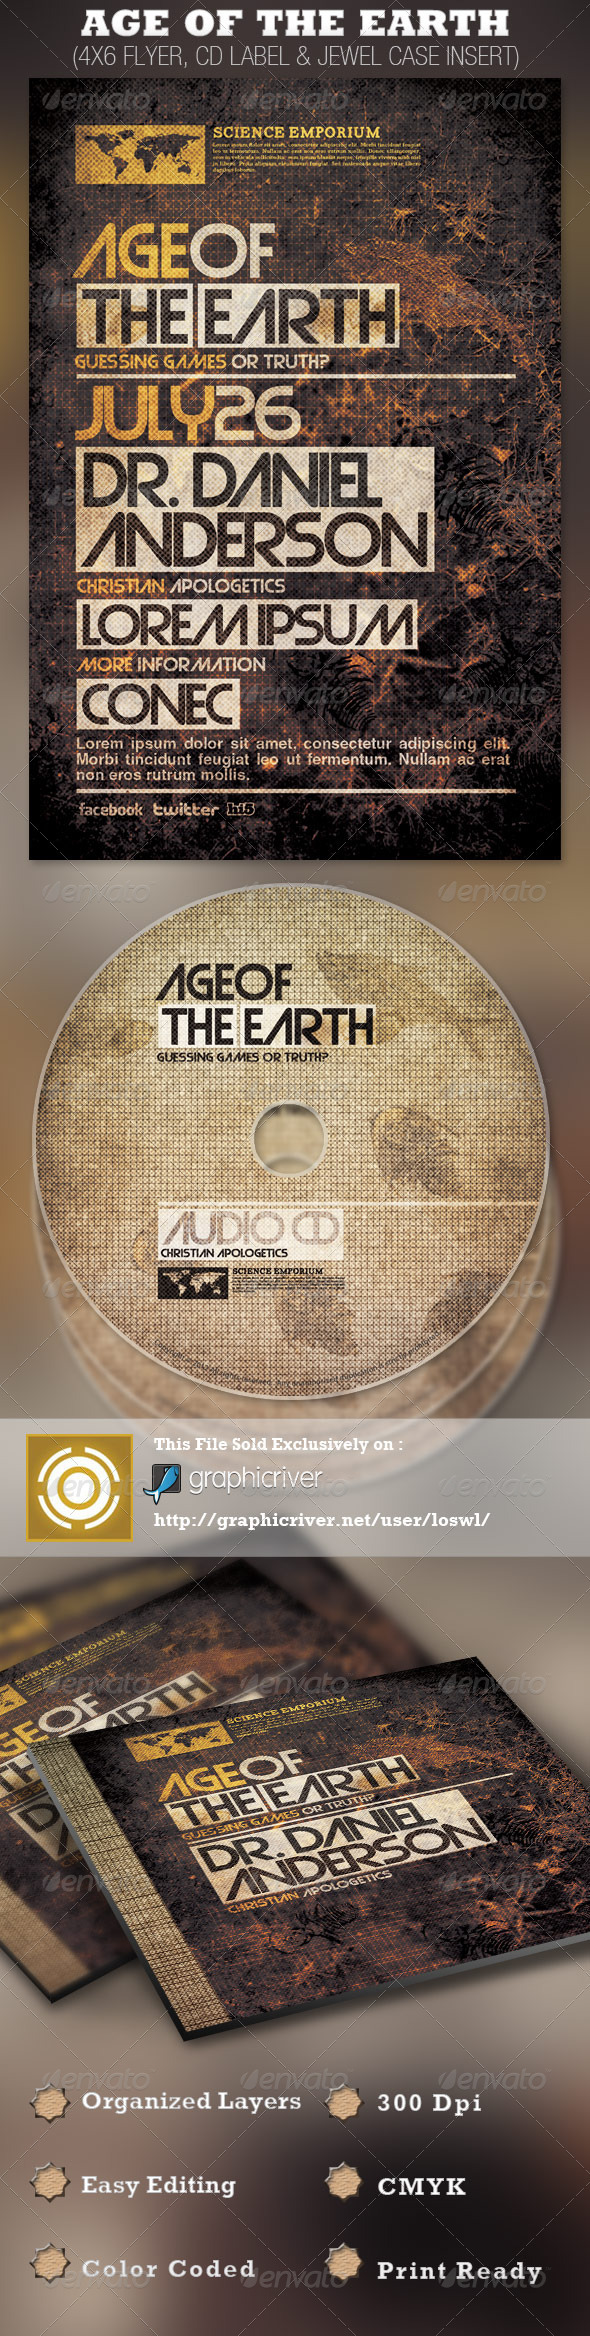 Age of the Earth Church Flyer and CD Template - Church Flyers